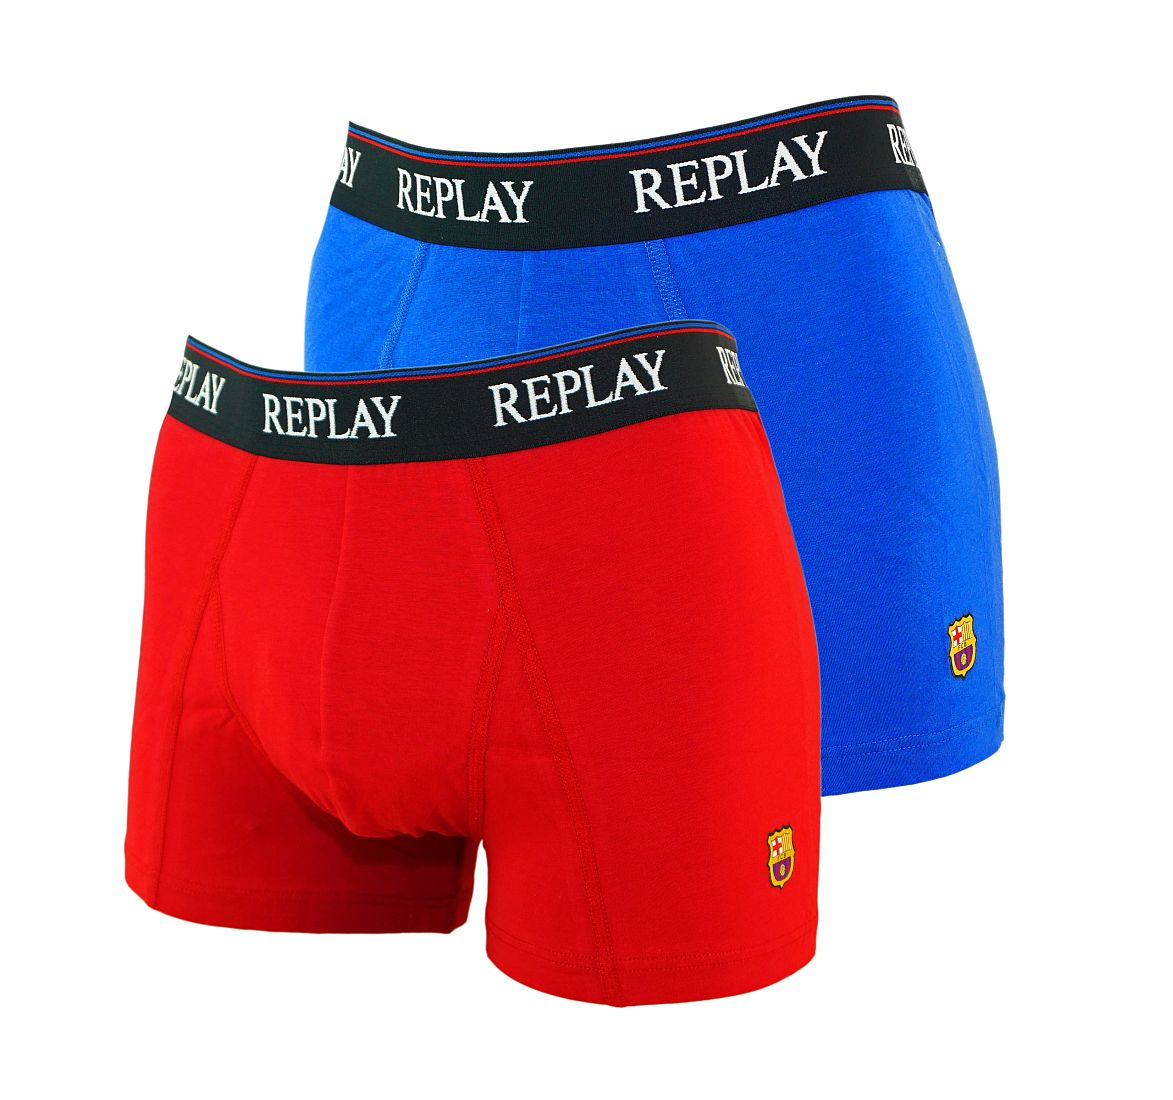 REPLAY 2er Pack Shorts Unterhosen Trunks M251143 B18 FS17-RPS1gp